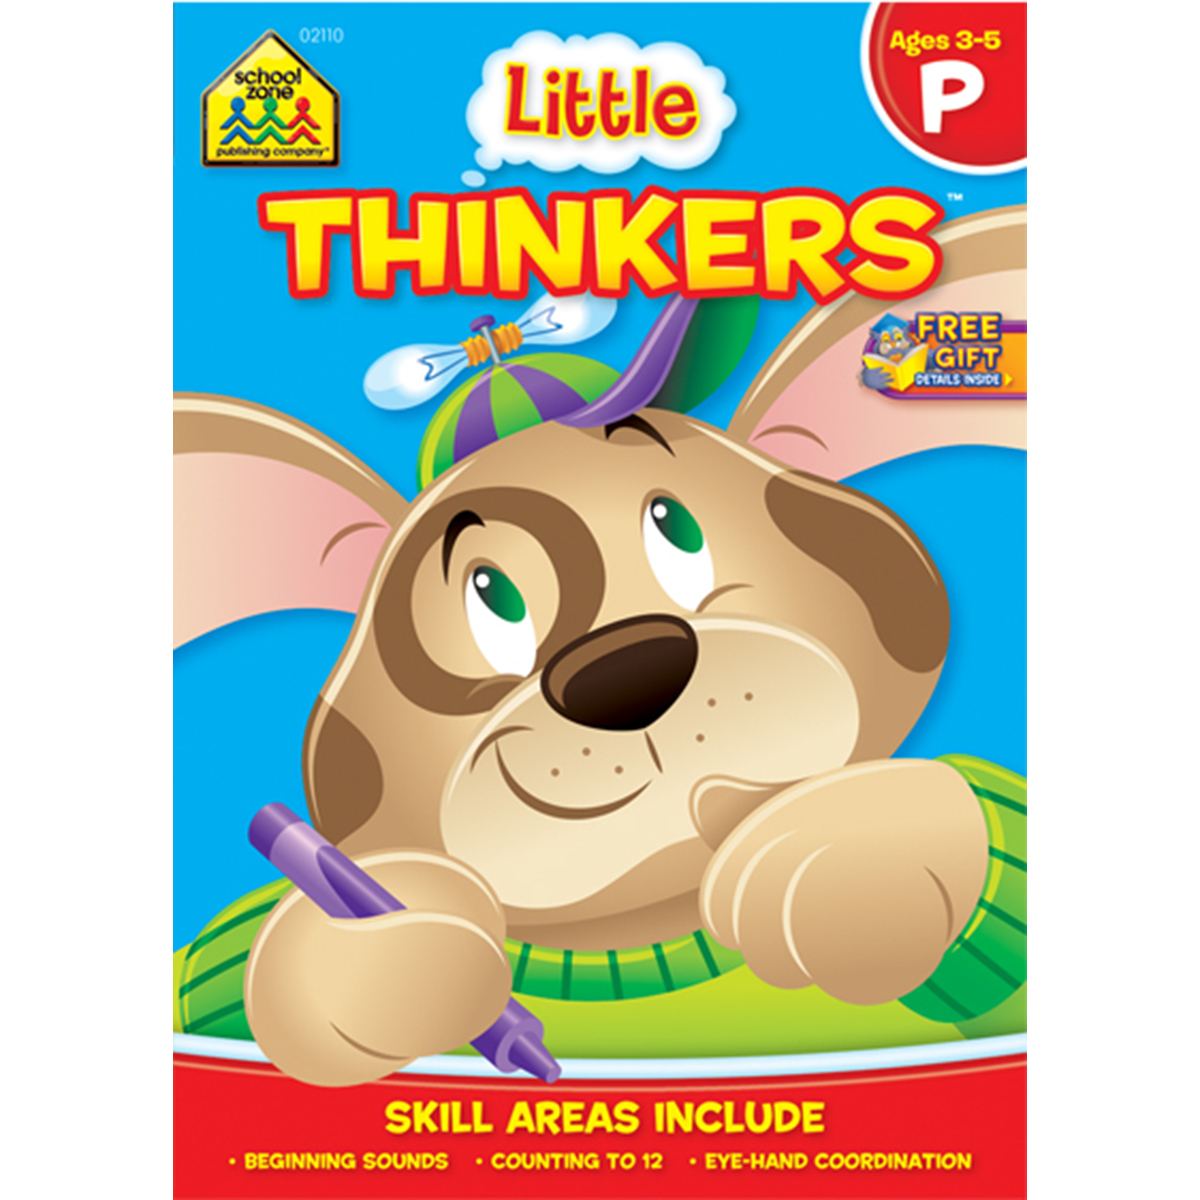 Preschool Workbooks, 32 Pages, Little Thinkers Preschool